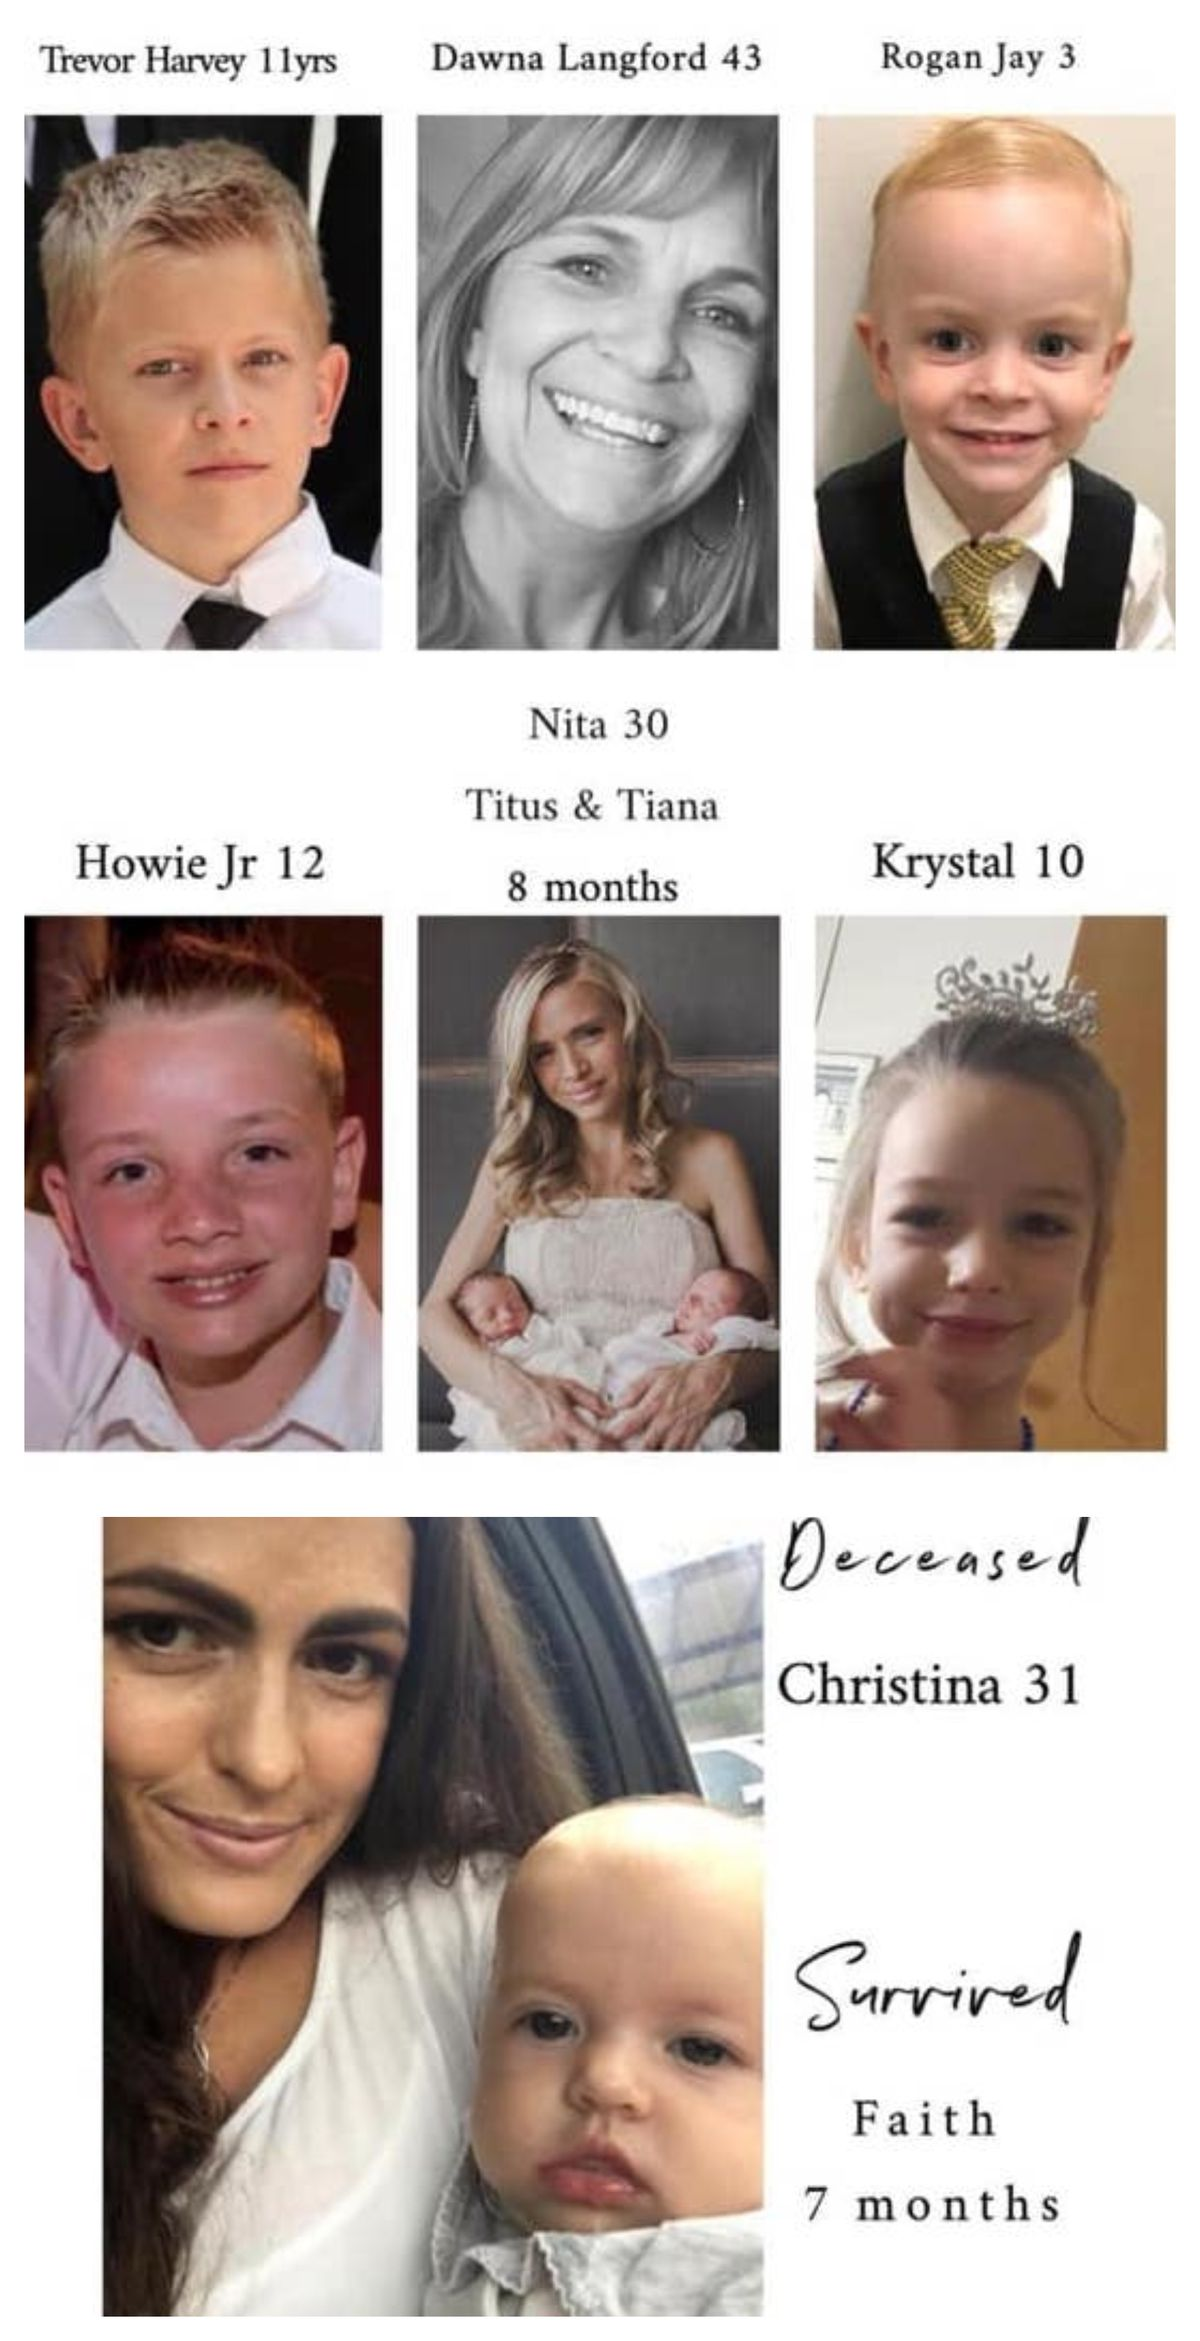 Facebook collage posted by Tiffany Langford, a relative of victims of an attack outside of La Mora, Mexico, shows Trevor Harvey Langford, 11; Dawna Ray Langford, 43; Rogan Jay Langford, 2; Howard Jacob Miller Jr., 12; Rhonita Maria Miller, 30; 8-month-old twins Titus Alvin Miller and Tiana Gricel Miller; Krystal Bellaine Miller, 10; Christina Marie Langford Johnson, 29; all of whom were killed, and Johnson's daughter Faith, 7 months, who is oneof the survivors.